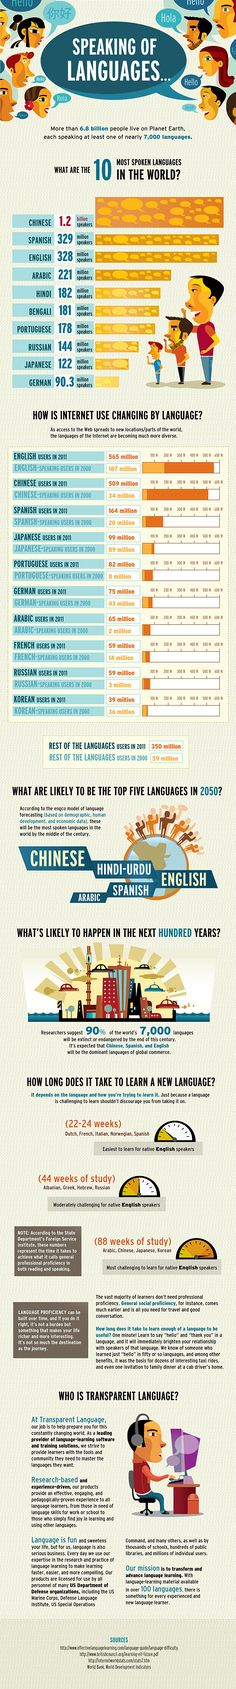 Speaking of Languages Infographic  www.travelerhype.com #travel #infographics